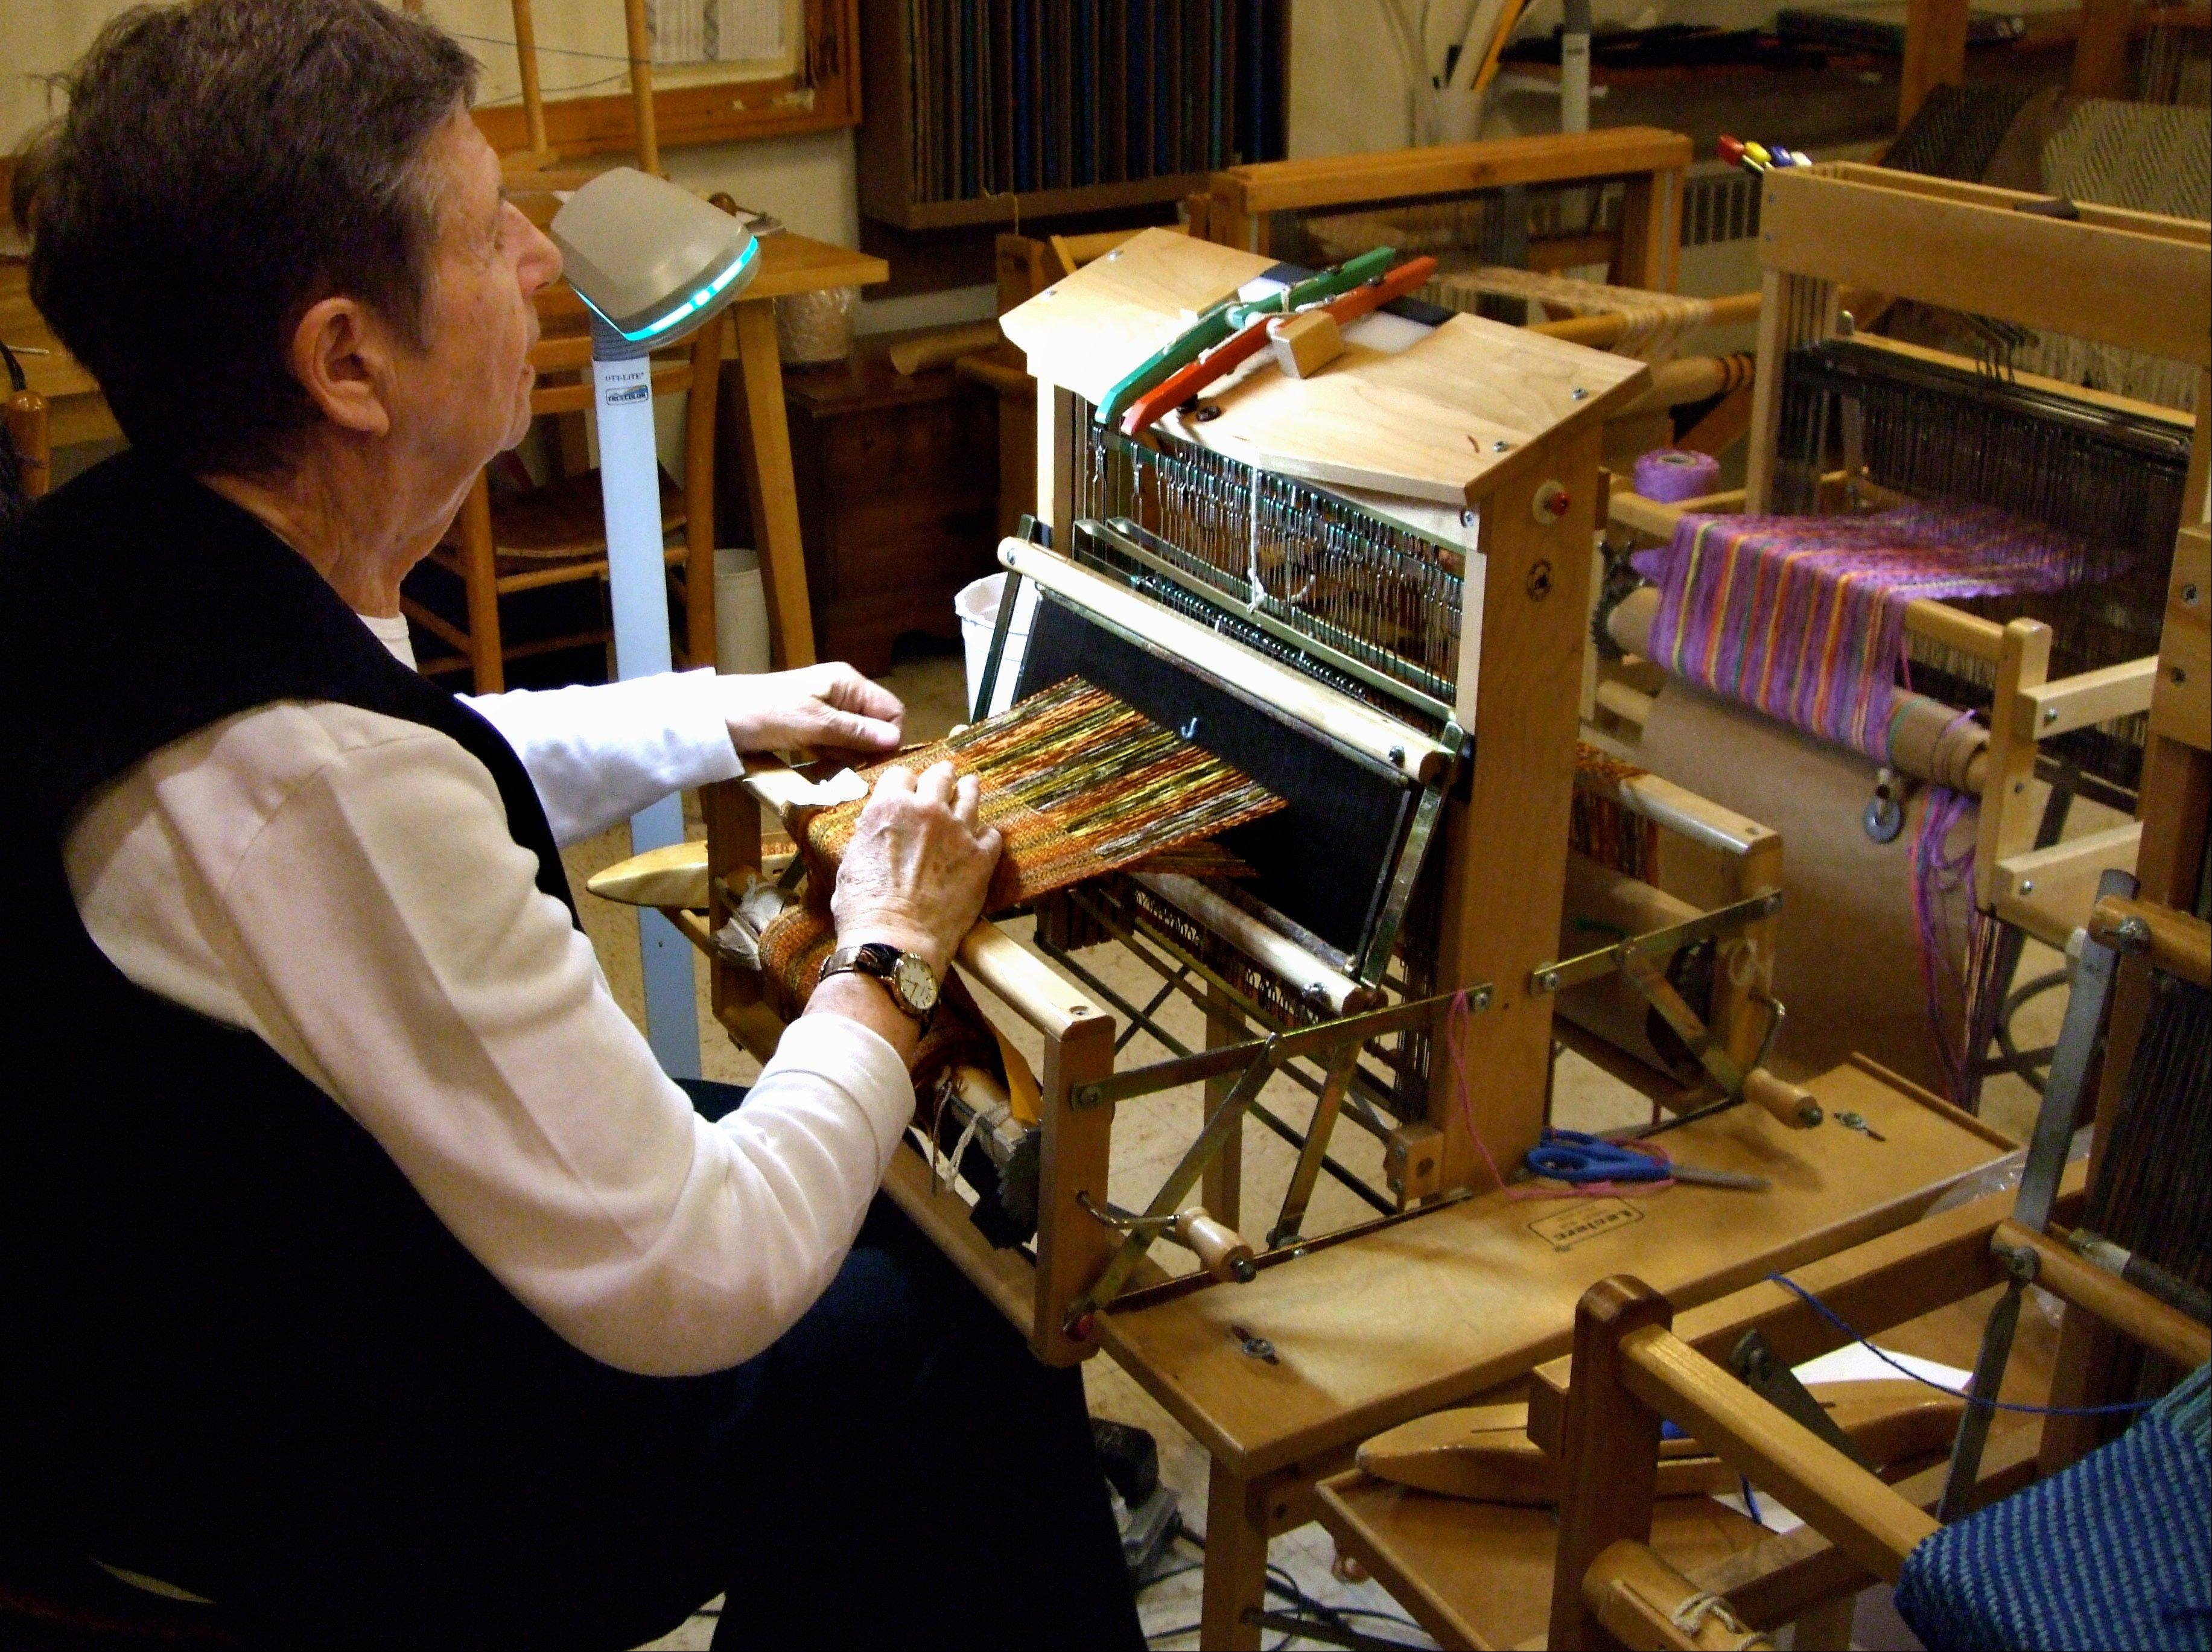 Pearl Zucherman, a member of the Fellowship Community, works on a loom in the weavery of the Fellowship, a commune-like setting in Chestnut Ridge, N.Y., that takes an unusual approach to care of the elderly.